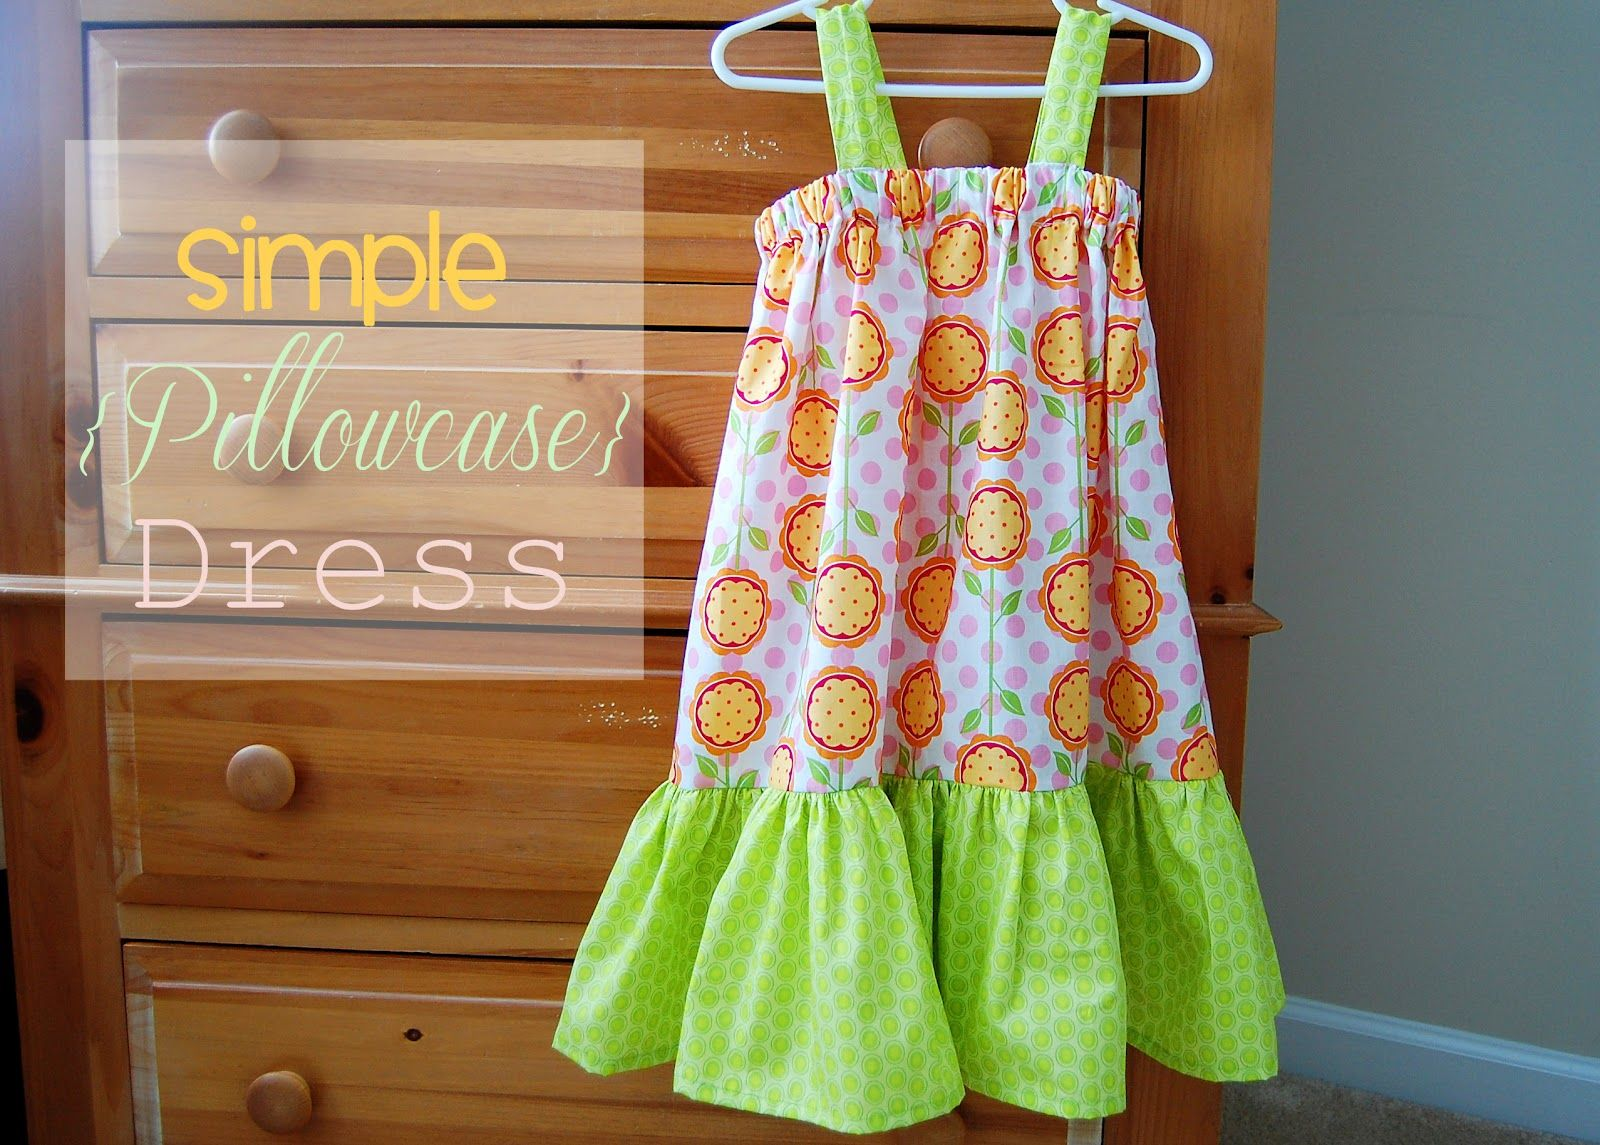 Sewing ideas & Southern Lovely: Simple Pillowcase Dress with elastic and no arm ... pillowsntoast.com